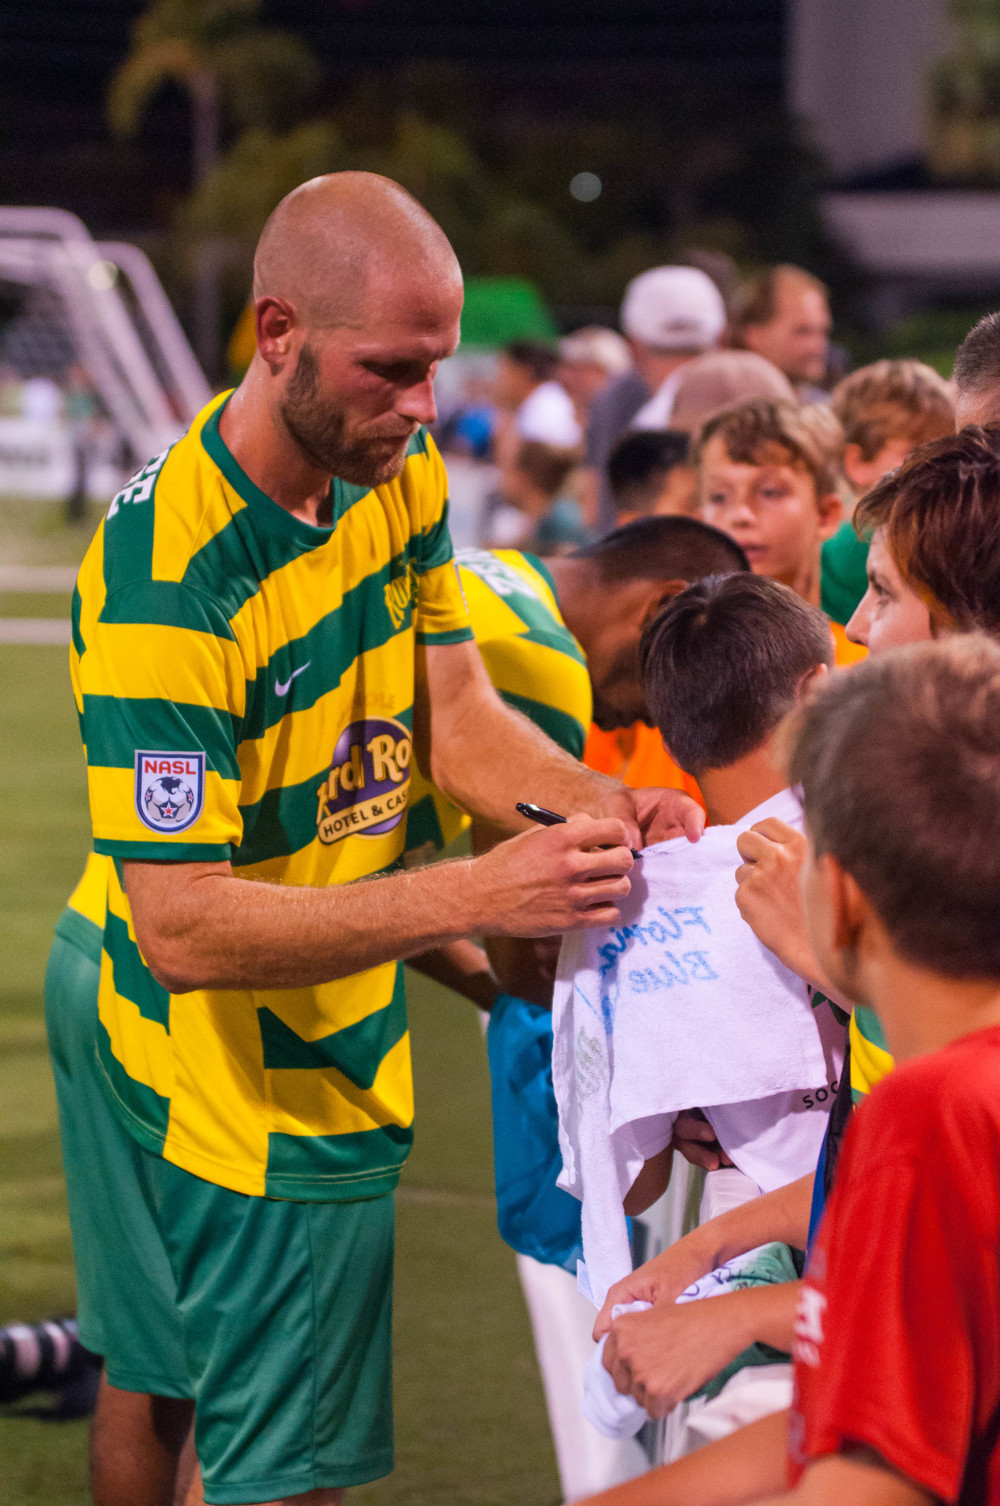 RowdiesStrikers-43.jpg